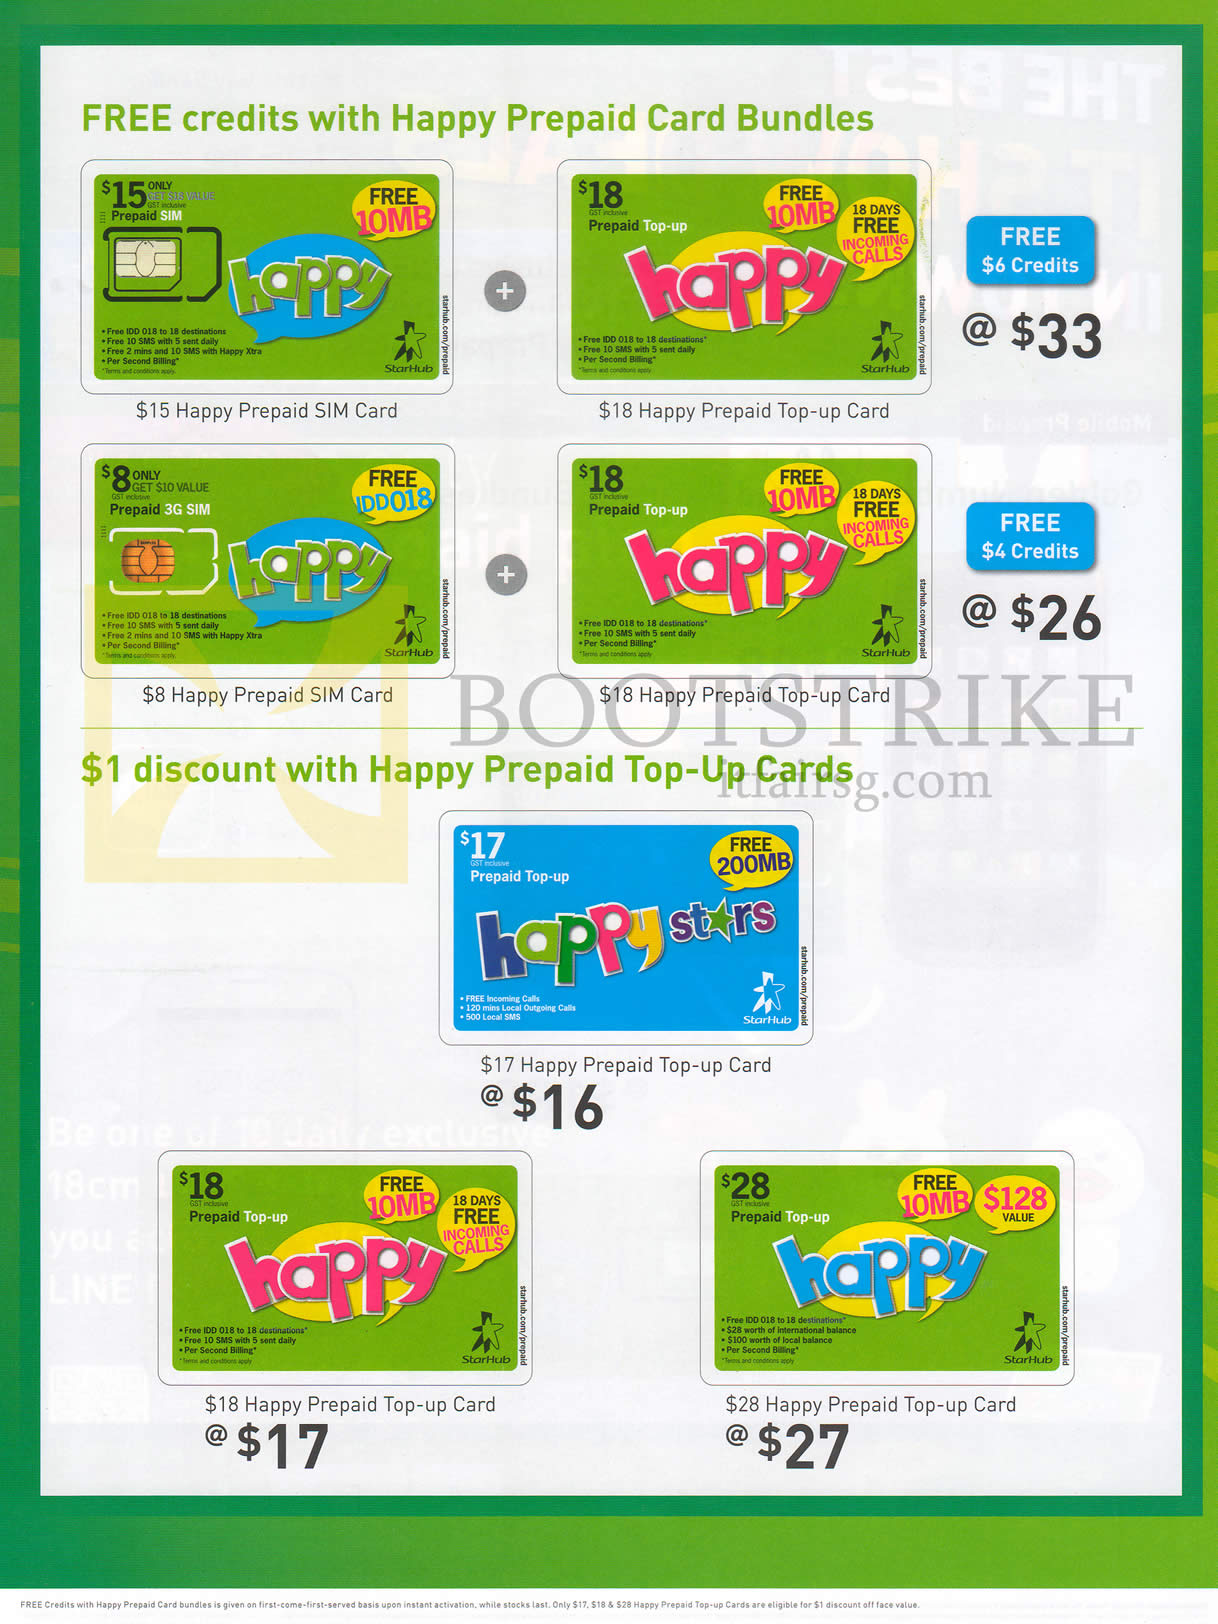 Starhub Prepaid Free Credits With Happy Prepaid Bundles, Top